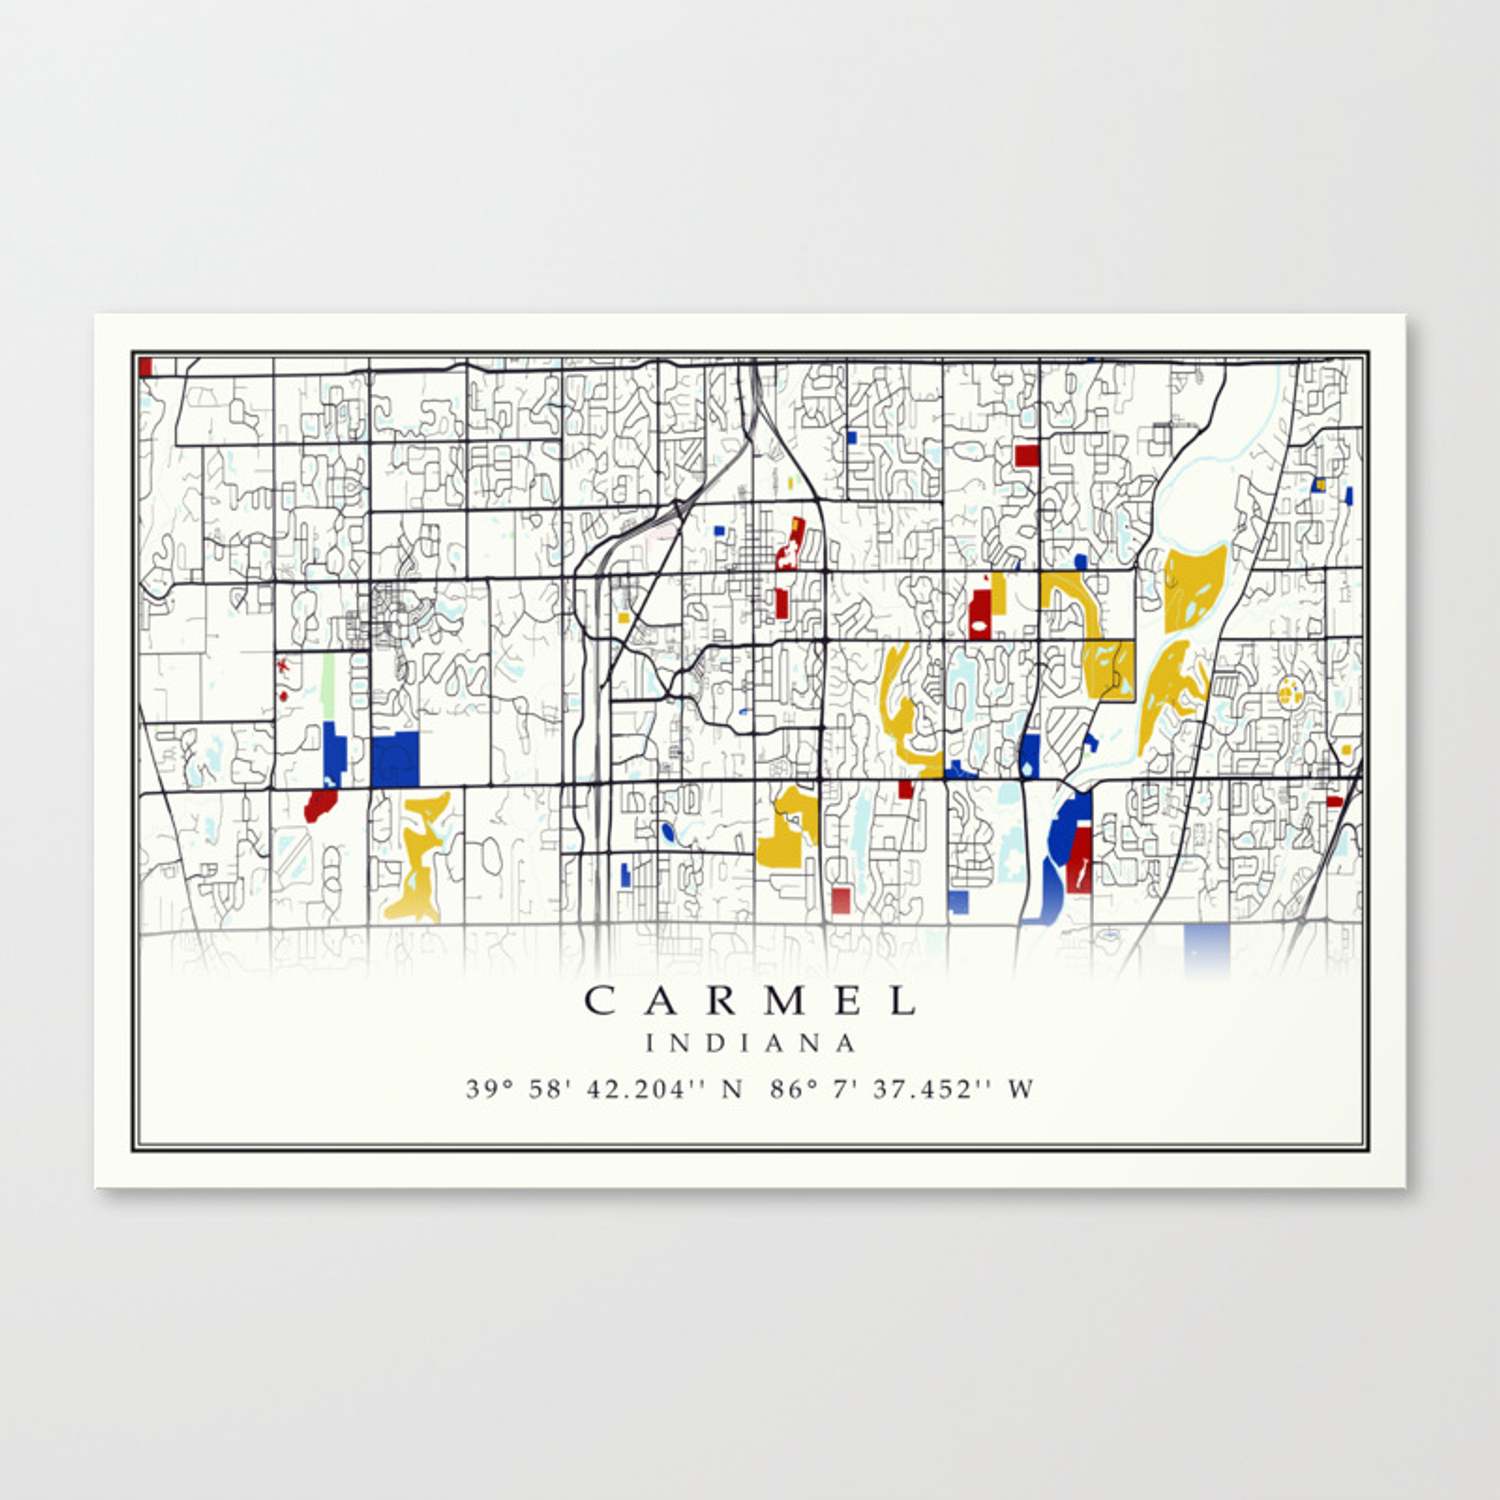 Carmel Indiana Map with GPS location Canvas Print on thunder bay ontario canada map, downieville map, greenfield map, monticello map, clayton map, california coast map, carroll map, santa barbara map, seaside map, mt laguna map, belmont map, san francisco map, monmouth map, rushville map, big sur map, capitola map, university of notre dame map, highland map, avenue of the giants map, brentwood map,